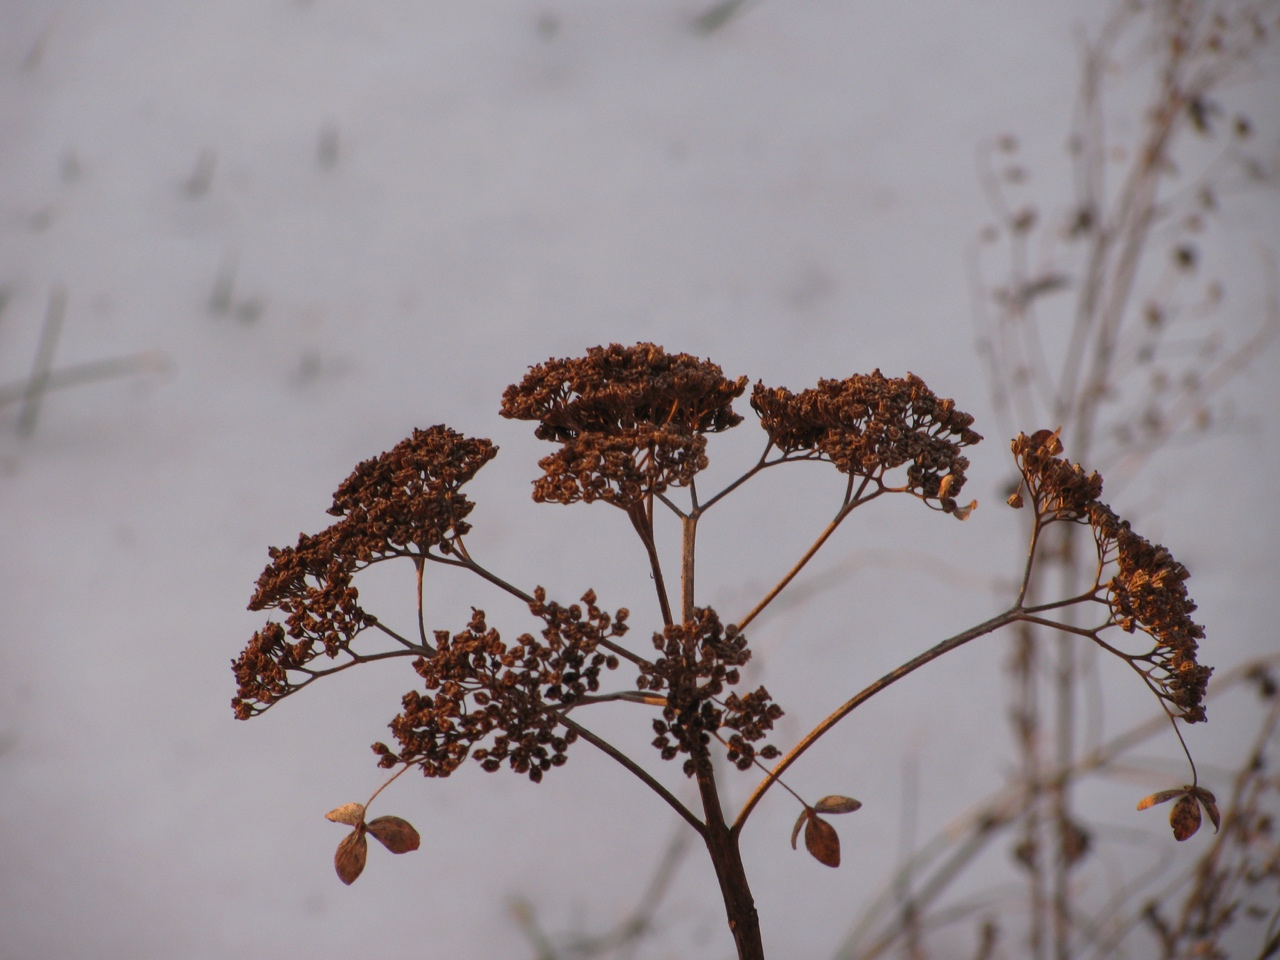 The Scientific Name is Hydrangea radiata [= Hydrangea arborescens ssp. radiata]. You will likely hear them called Silverleaf Hydrangea, Snowy Hydrangea. This picture shows the Dried inflorescence during winter of Hydrangea radiata [= Hydrangea arborescens ssp. radiata]